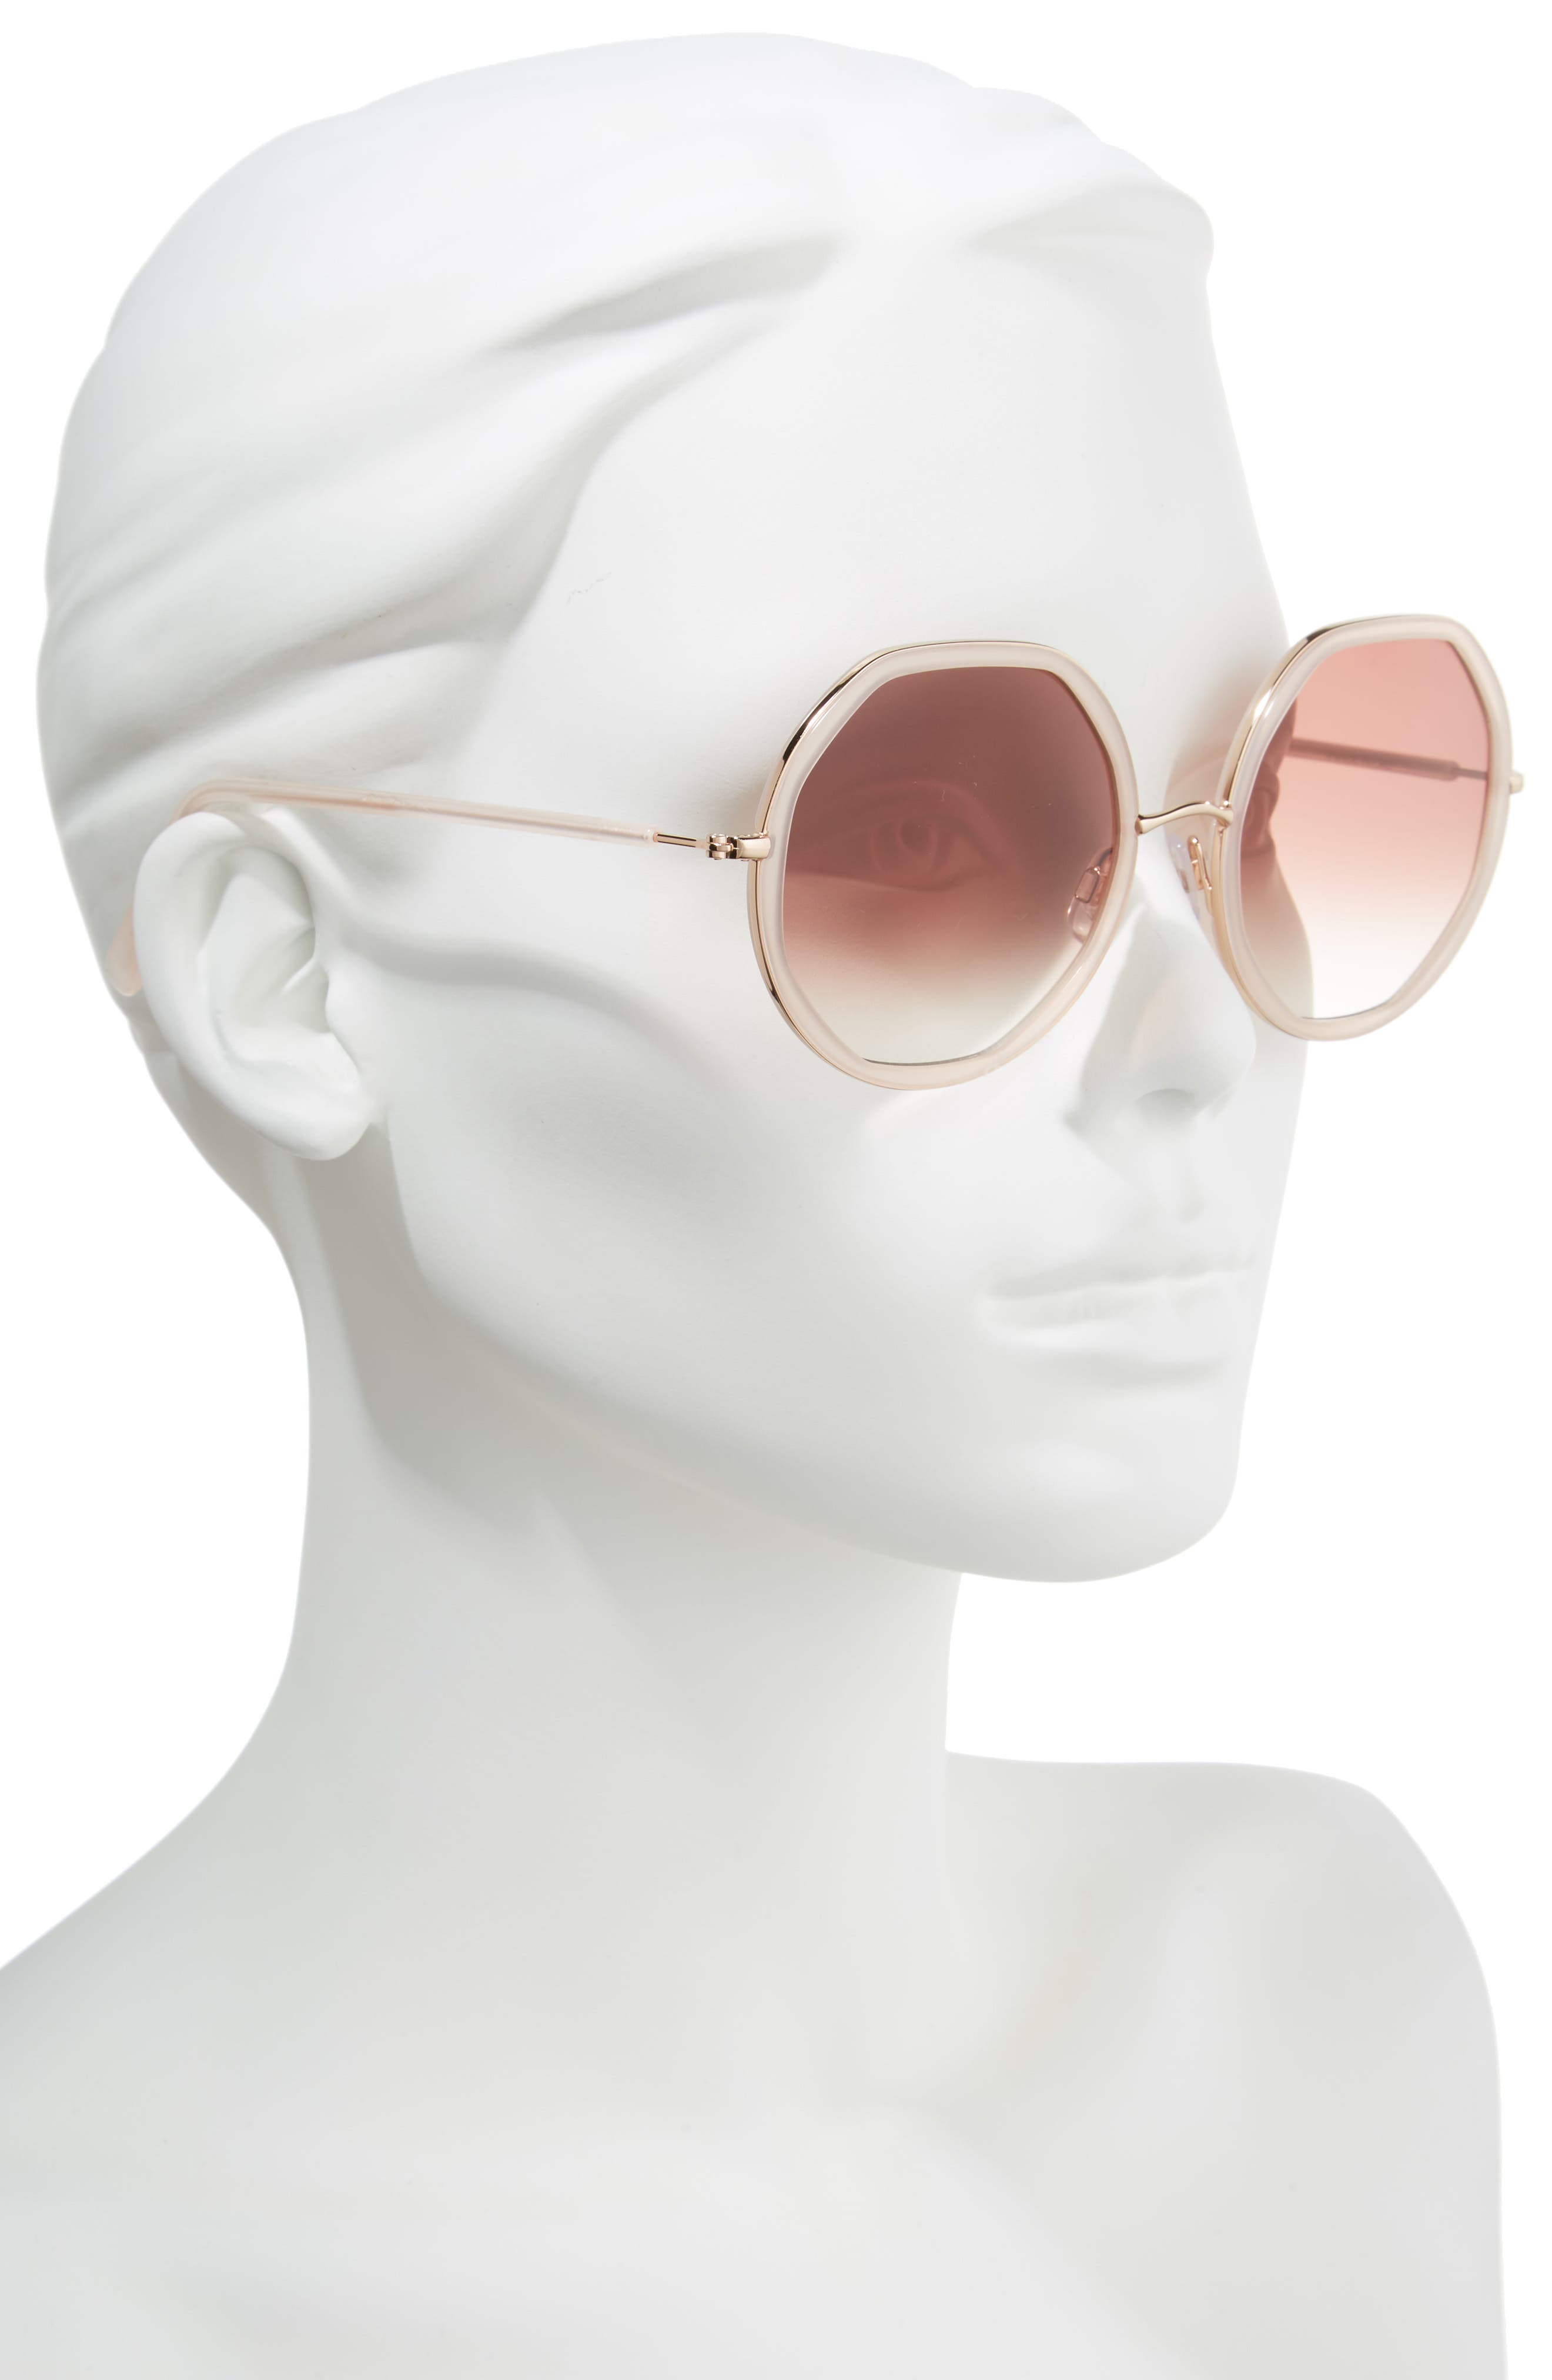 D'BLANC Sonic Bloom 58mm Sunglasses,                             Alternate thumbnail 2, color,                             Octagon Blush